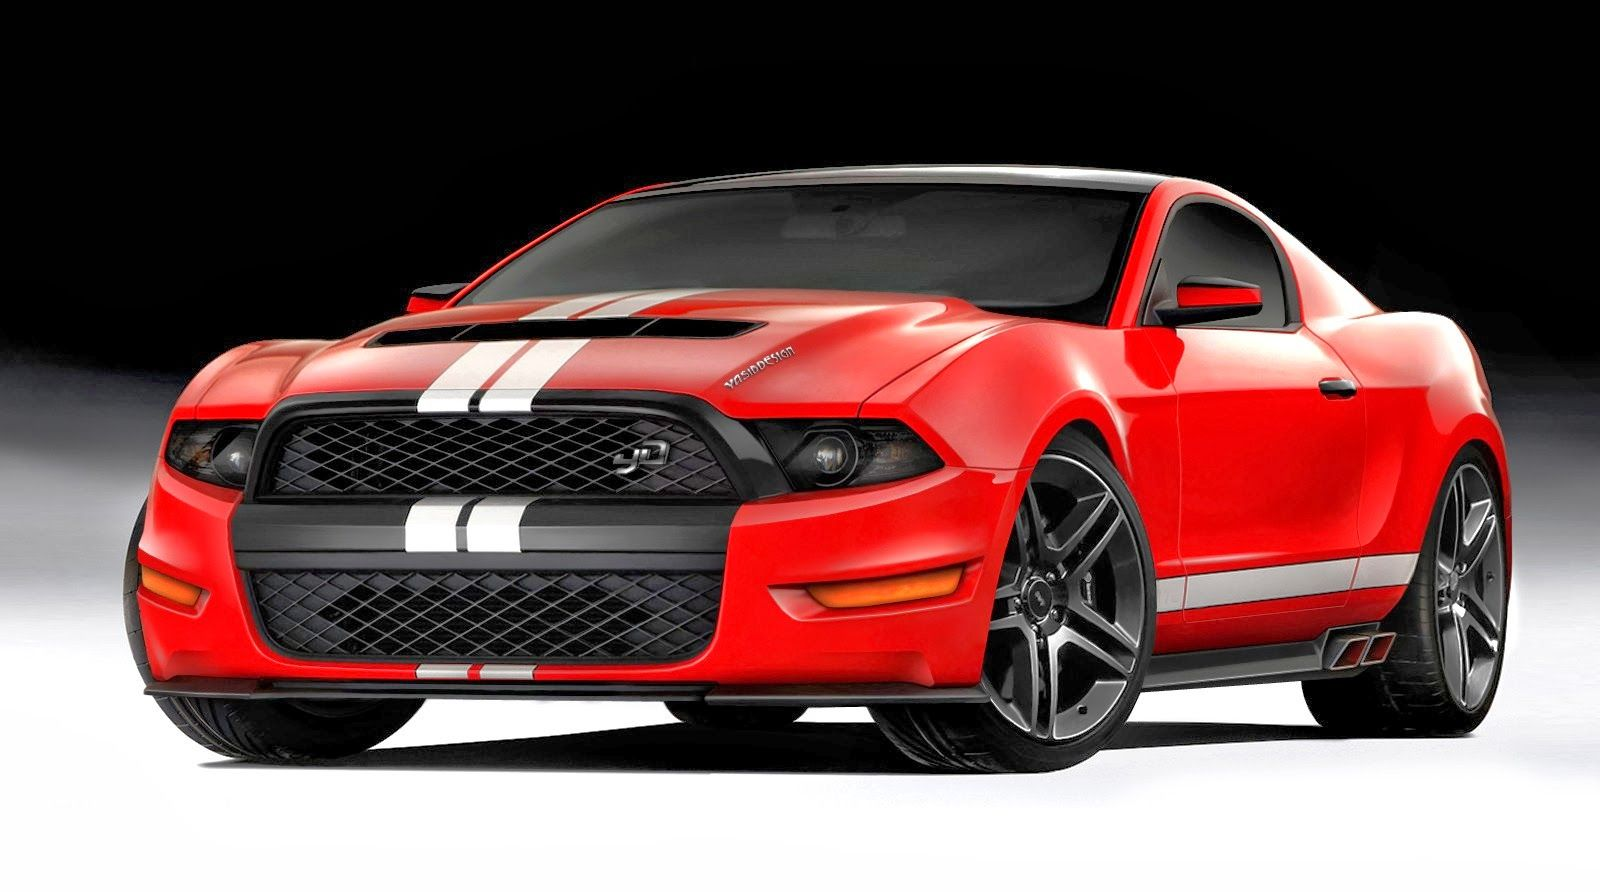 2016 ford mustang shelby gt500 review release date 2016 ford mustang shelby gt500 will